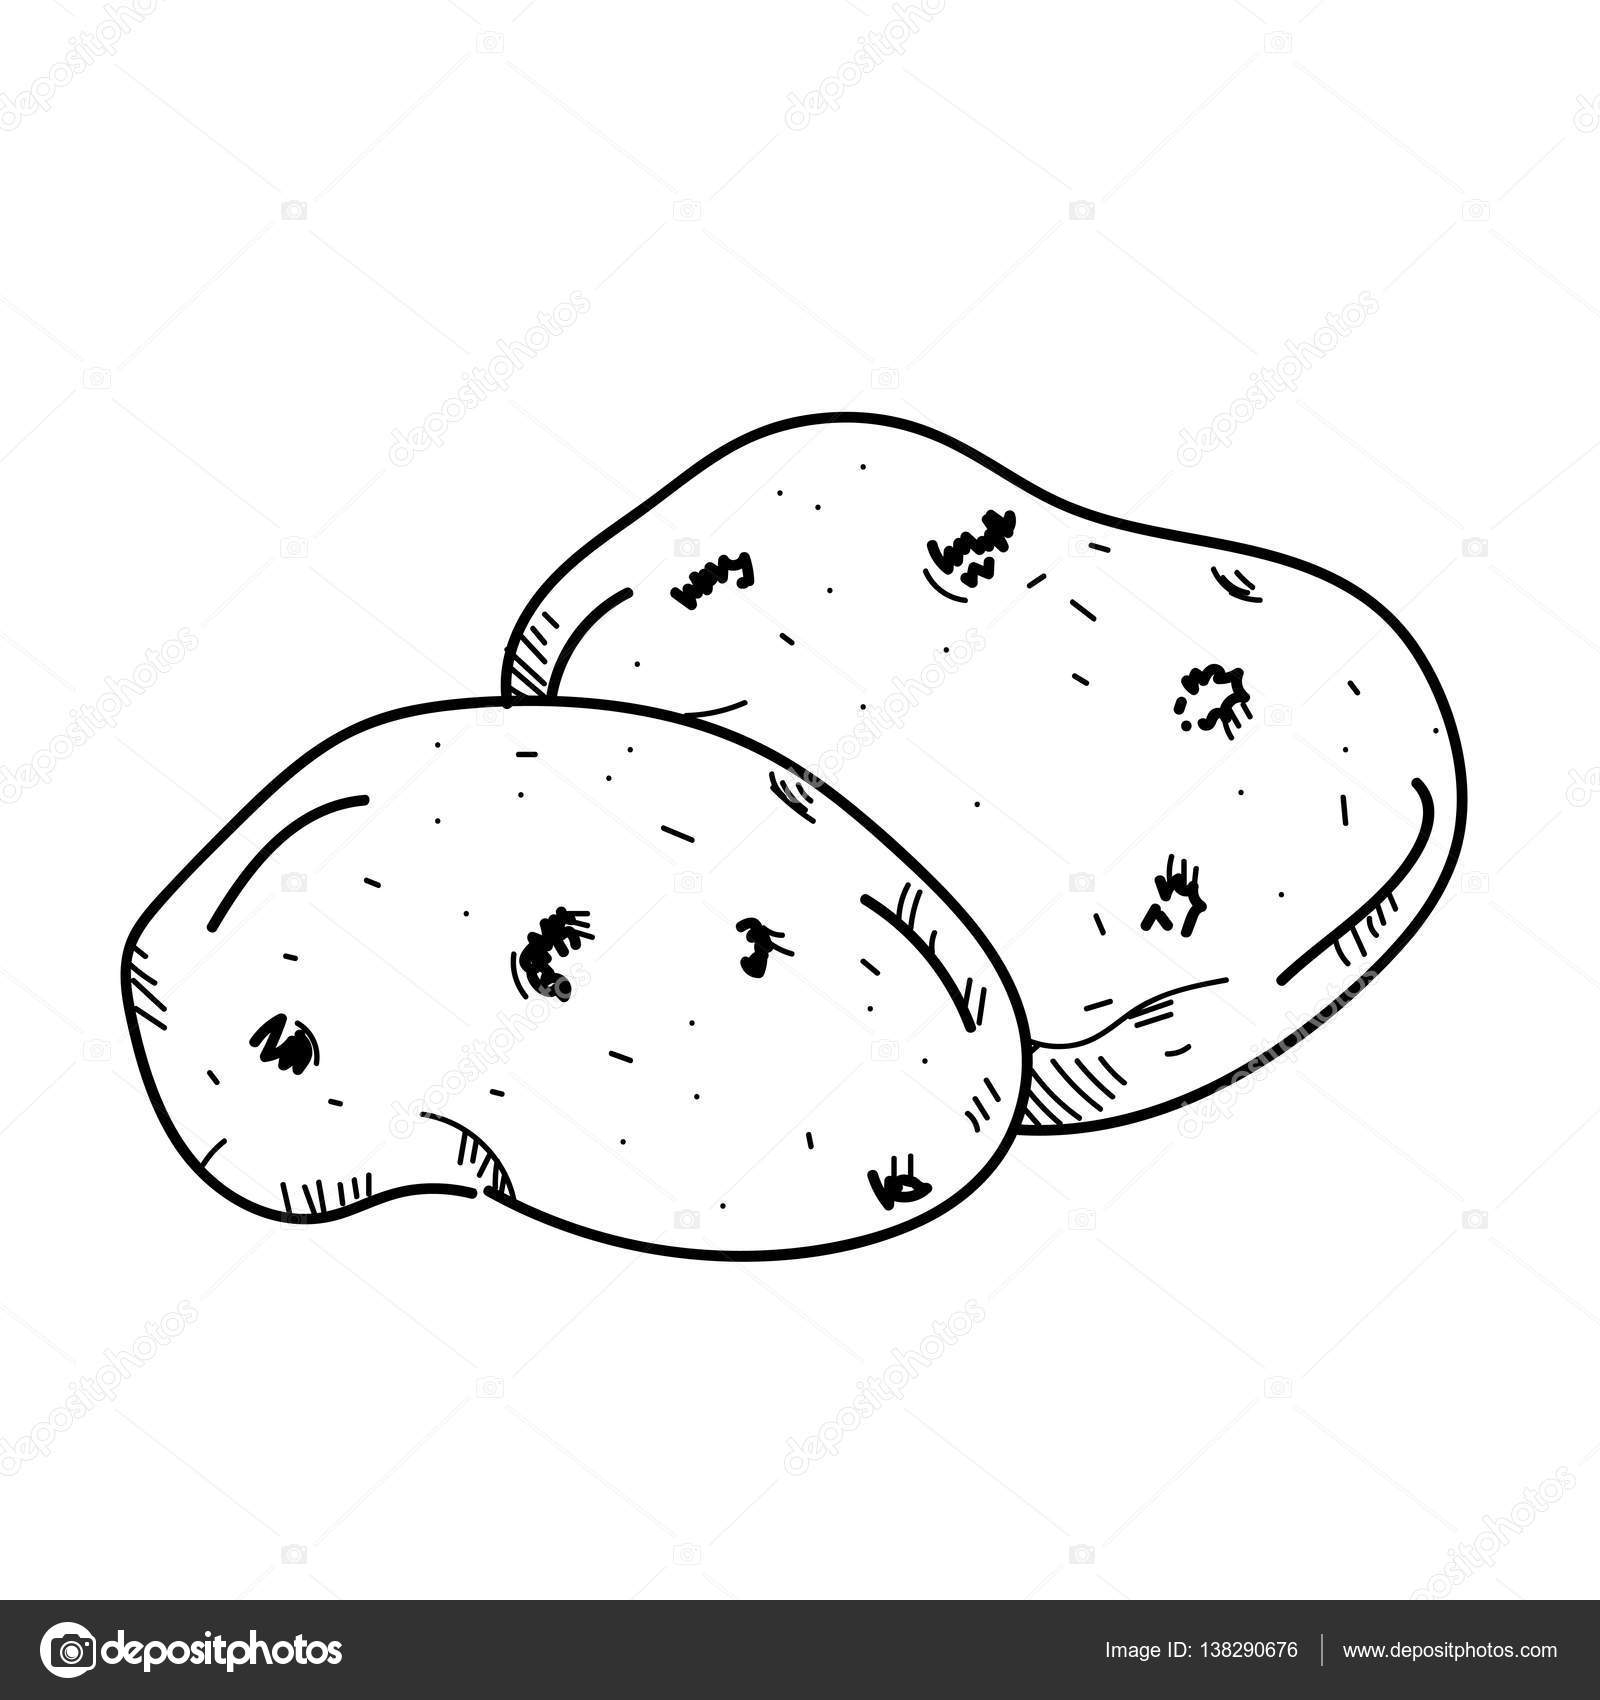 Potato clipart draw. Freehand drawing illustration vegetable